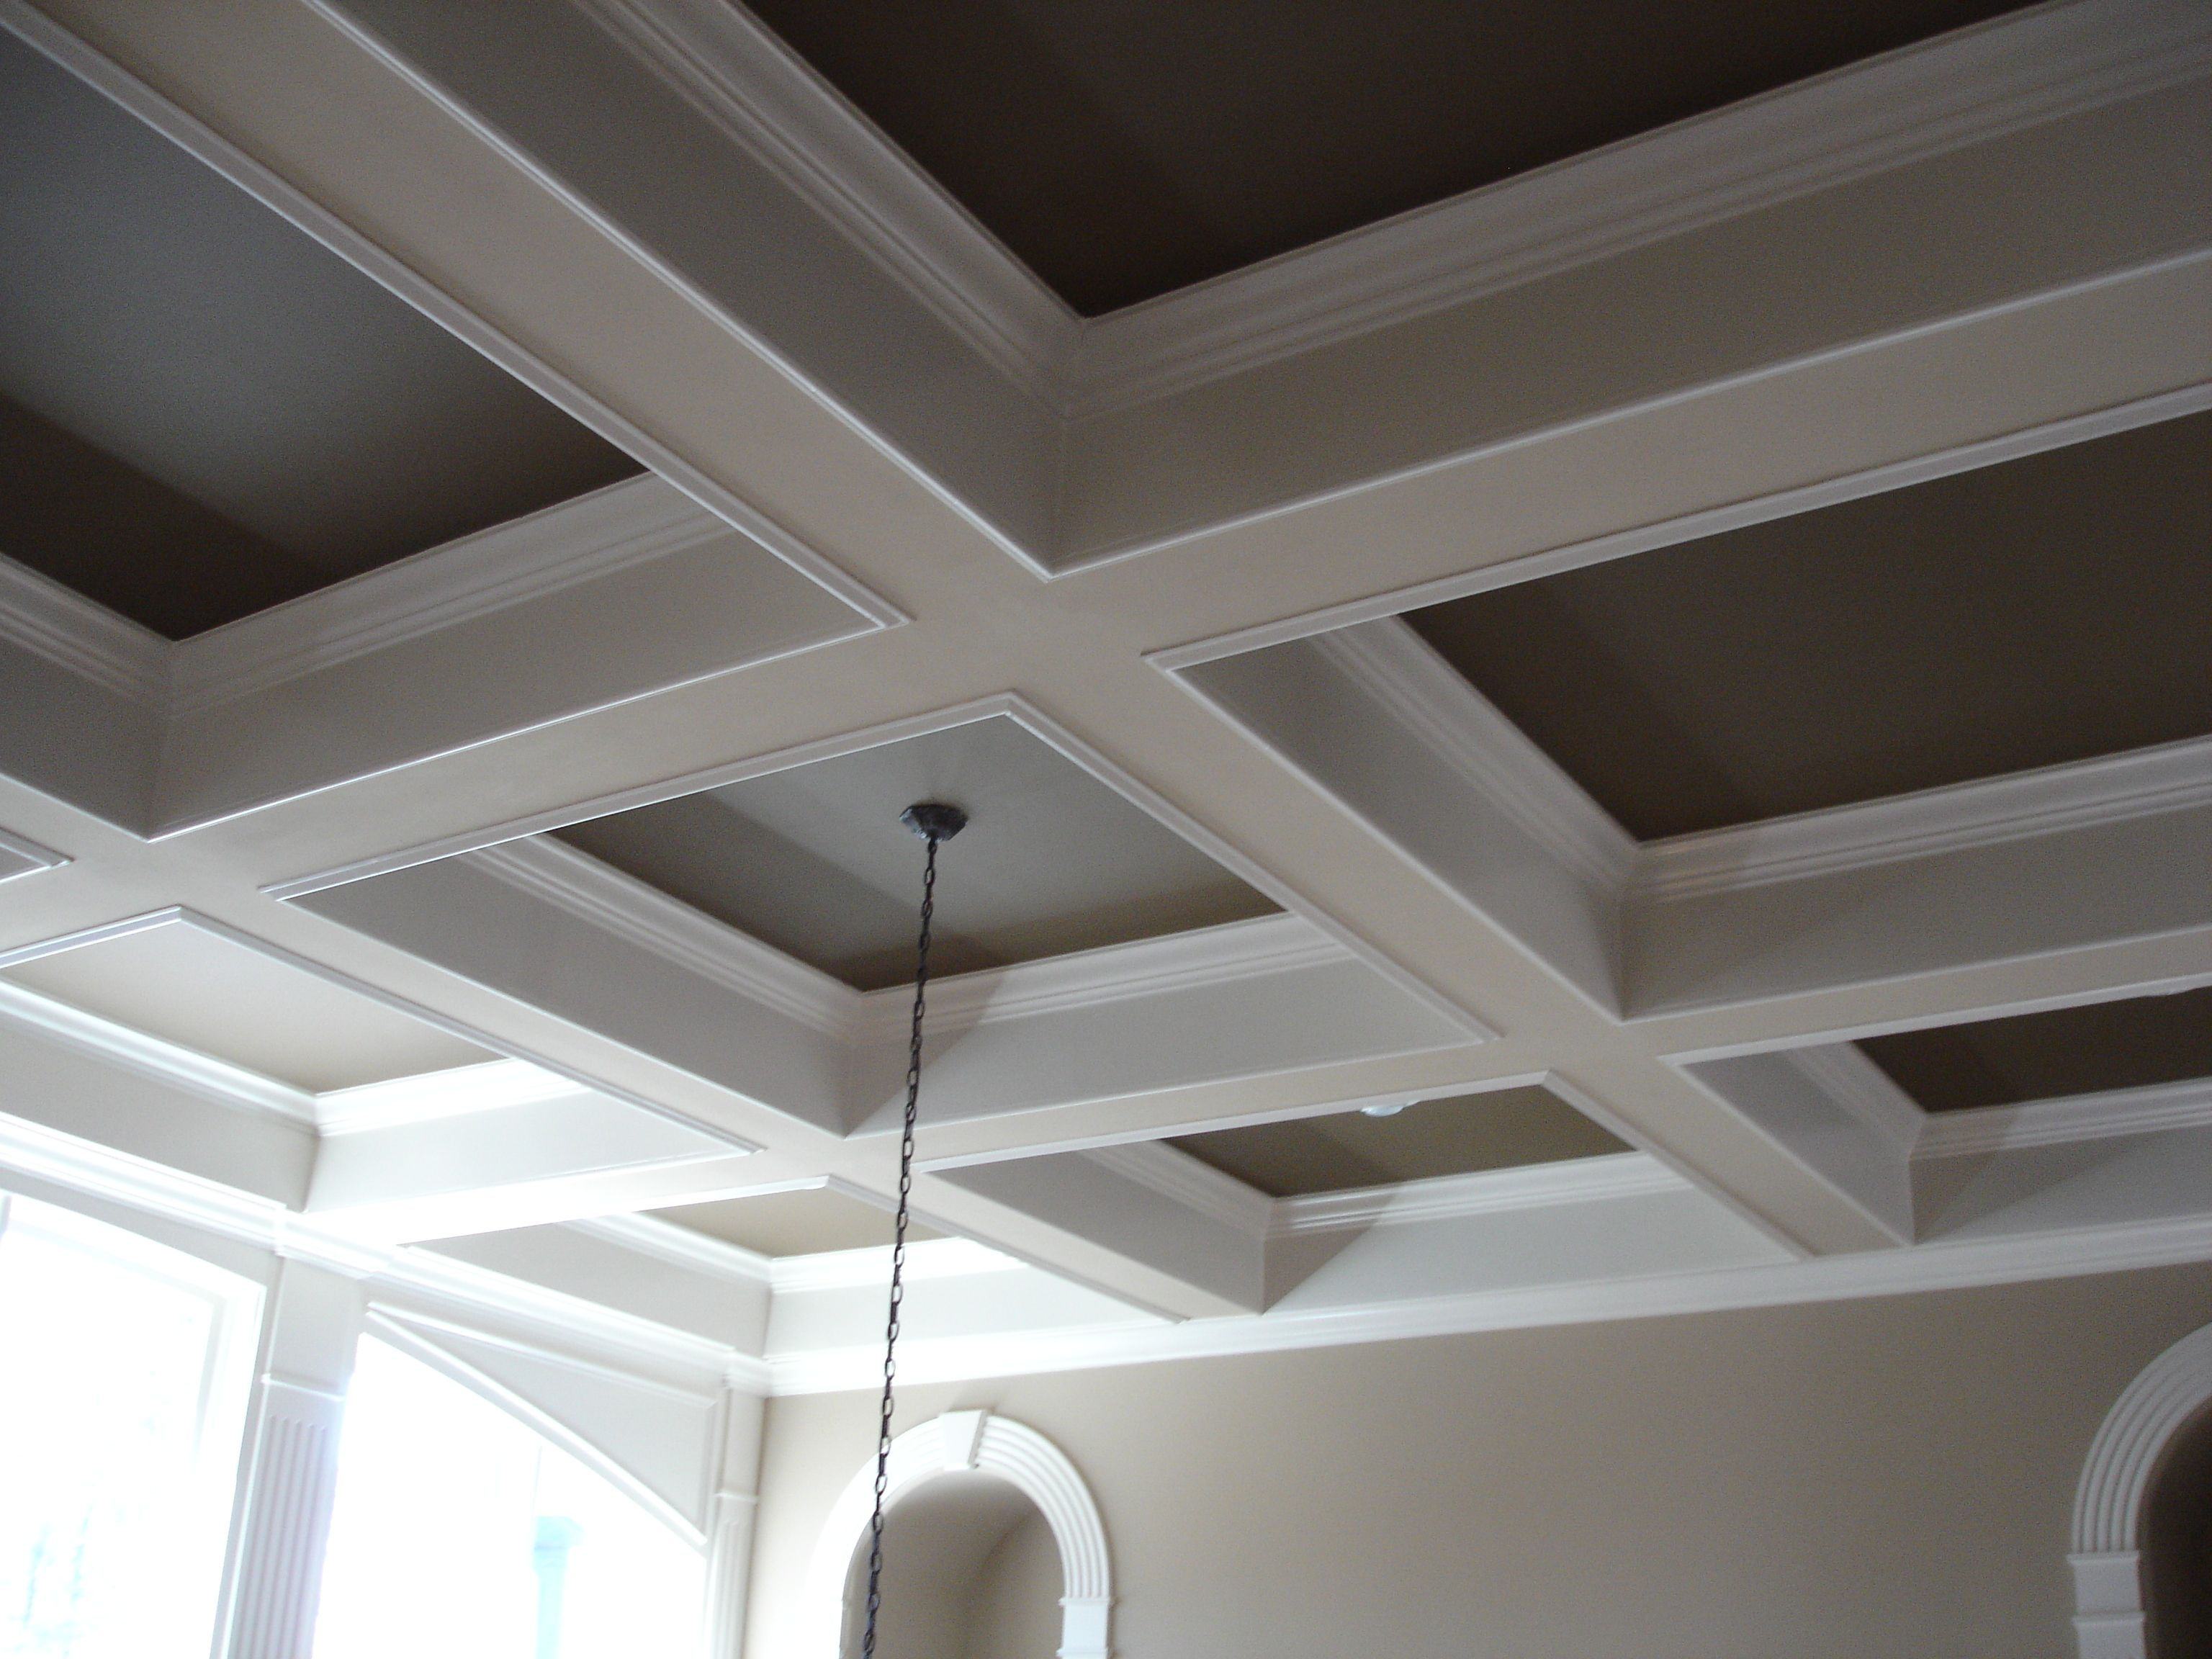 Roundup 10 Diy Ceiling Embellishment Projects Home Ceiling Diy